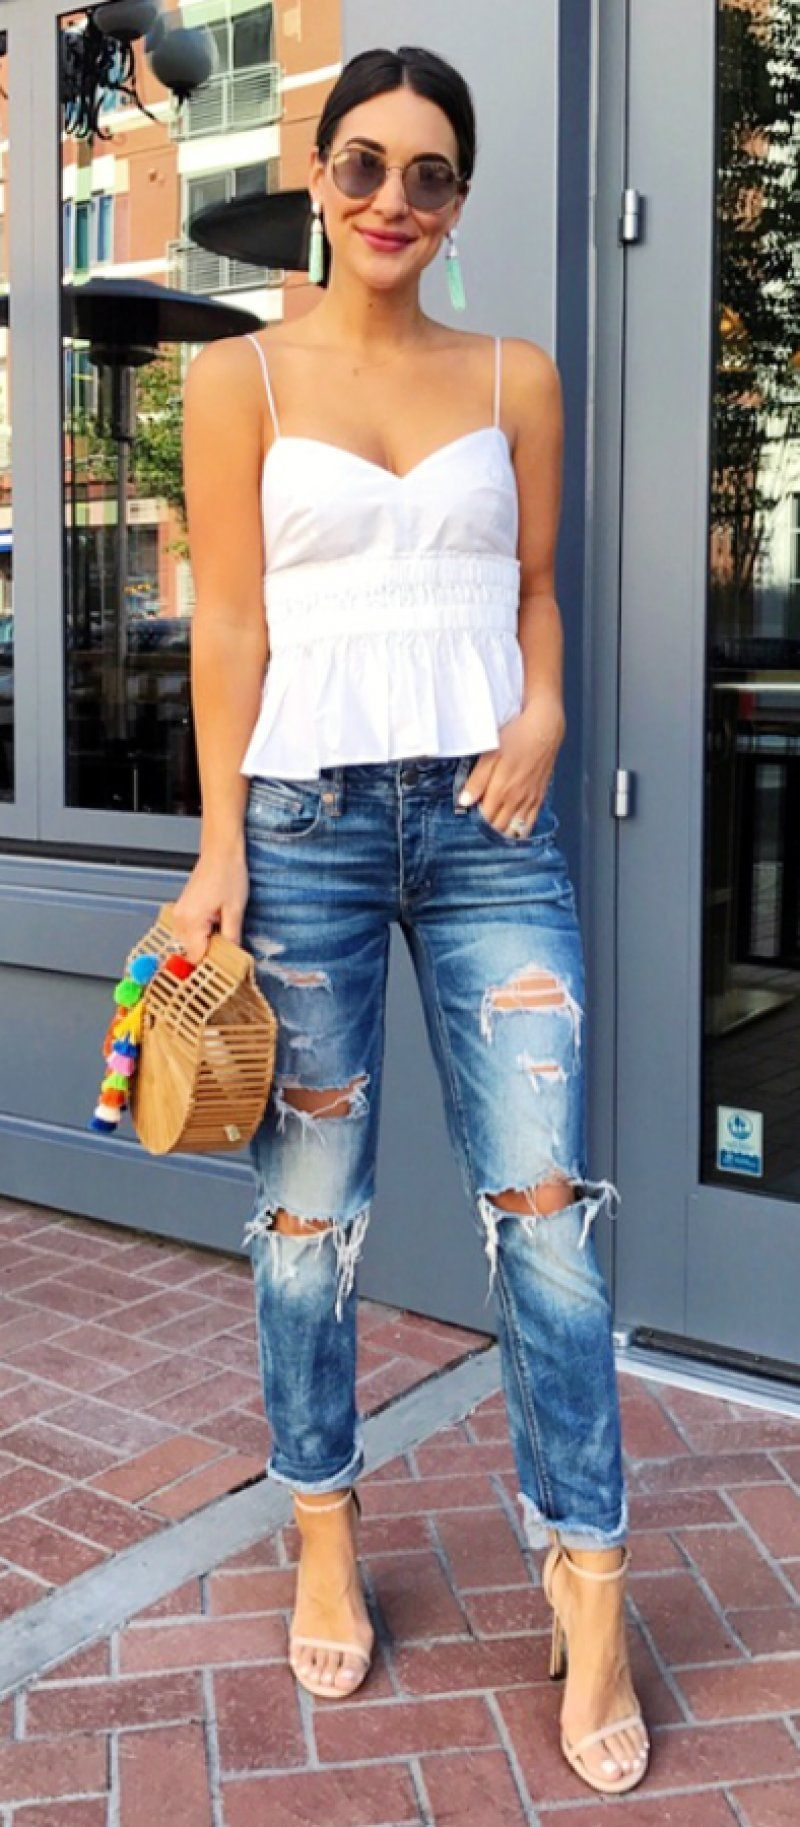 Summer Dresses Casual Day White Tank Destroyed Jeans In 2020 Casual Dress Outfits Boyfriend Jeans Basic Summer Outfits